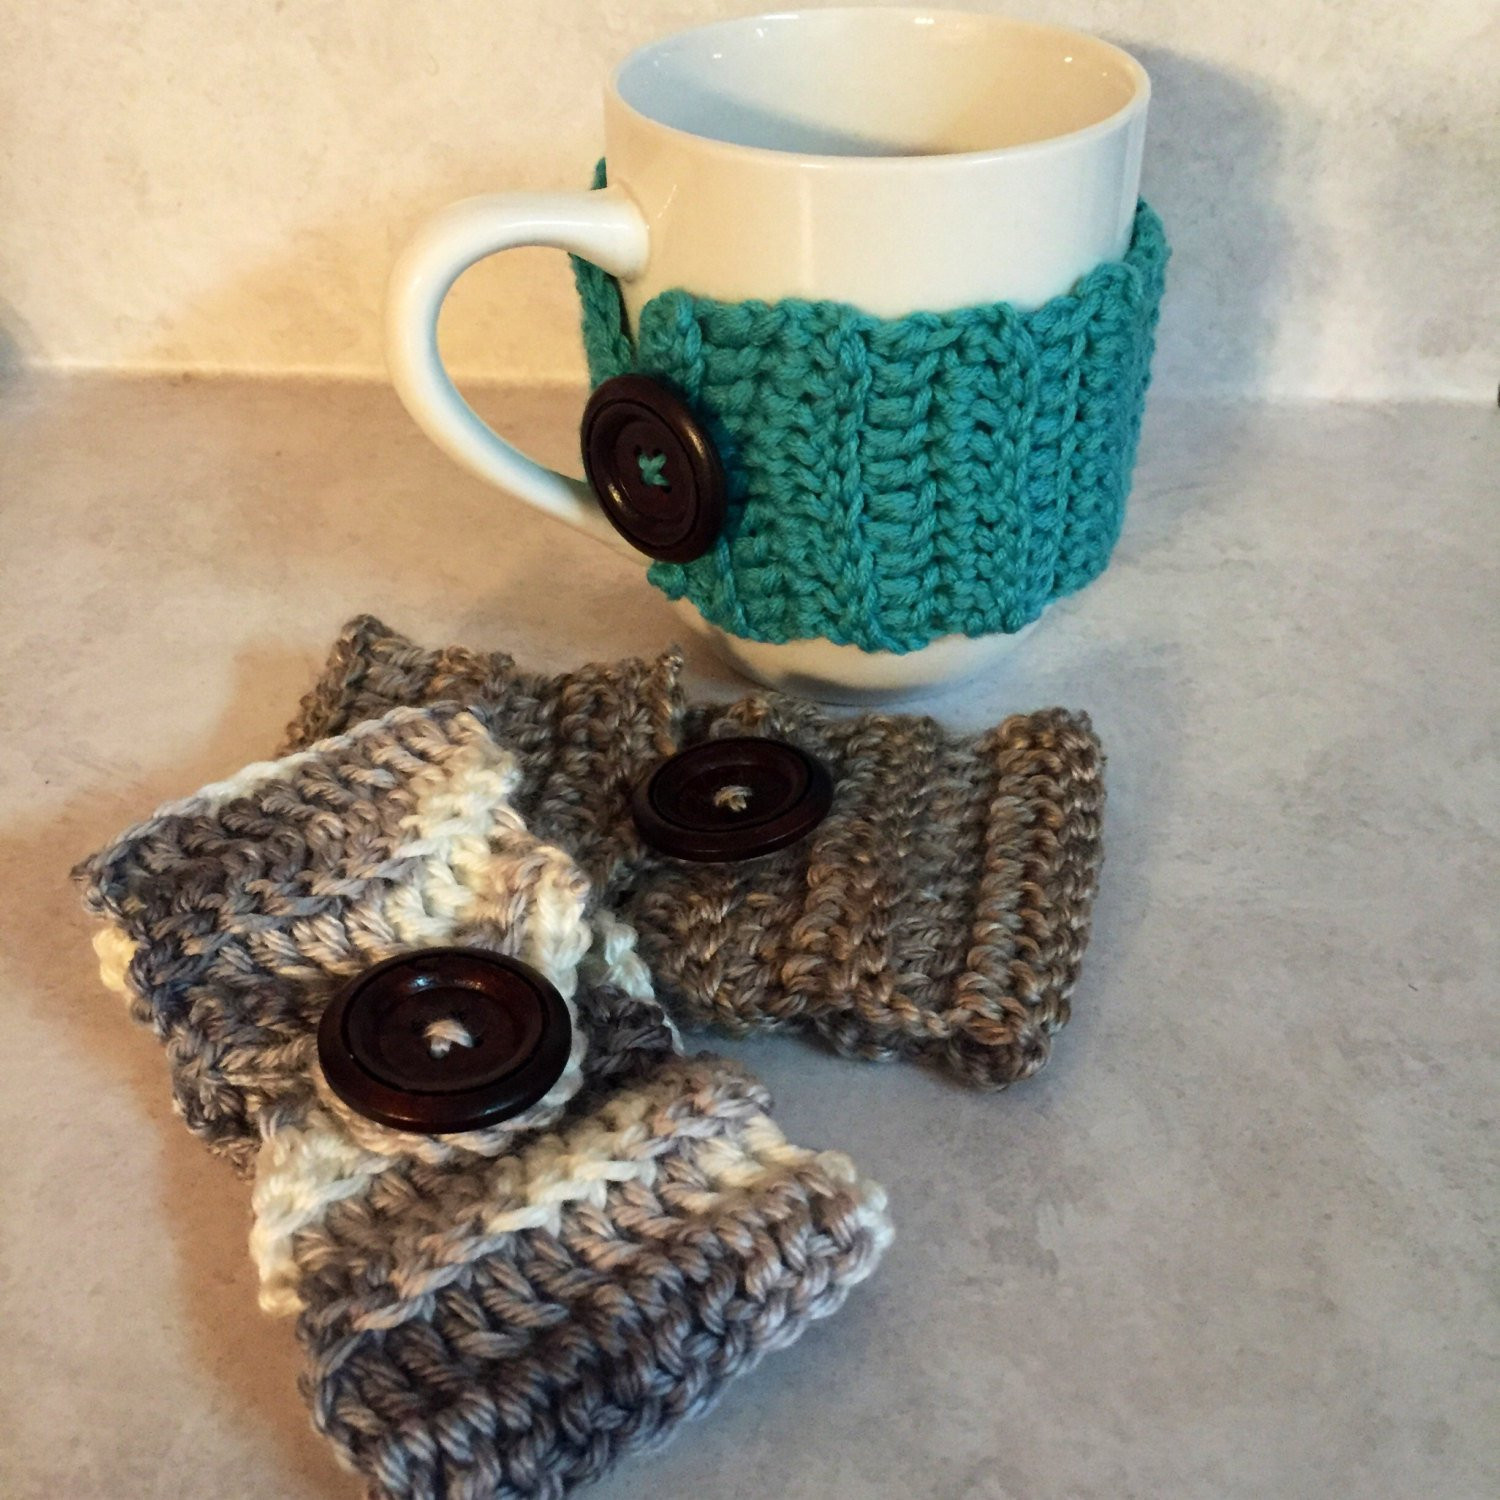 Crochet Coffee Cup Cozy New Crochet Tea Cozy Coffee Cup Sleeve Coffee Sleeve Mug Cozy Of Crochet Coffee Cup Cozy Best Of Craftdrawer Crafts Free Easy to Crochet Mug Cozy Patterns